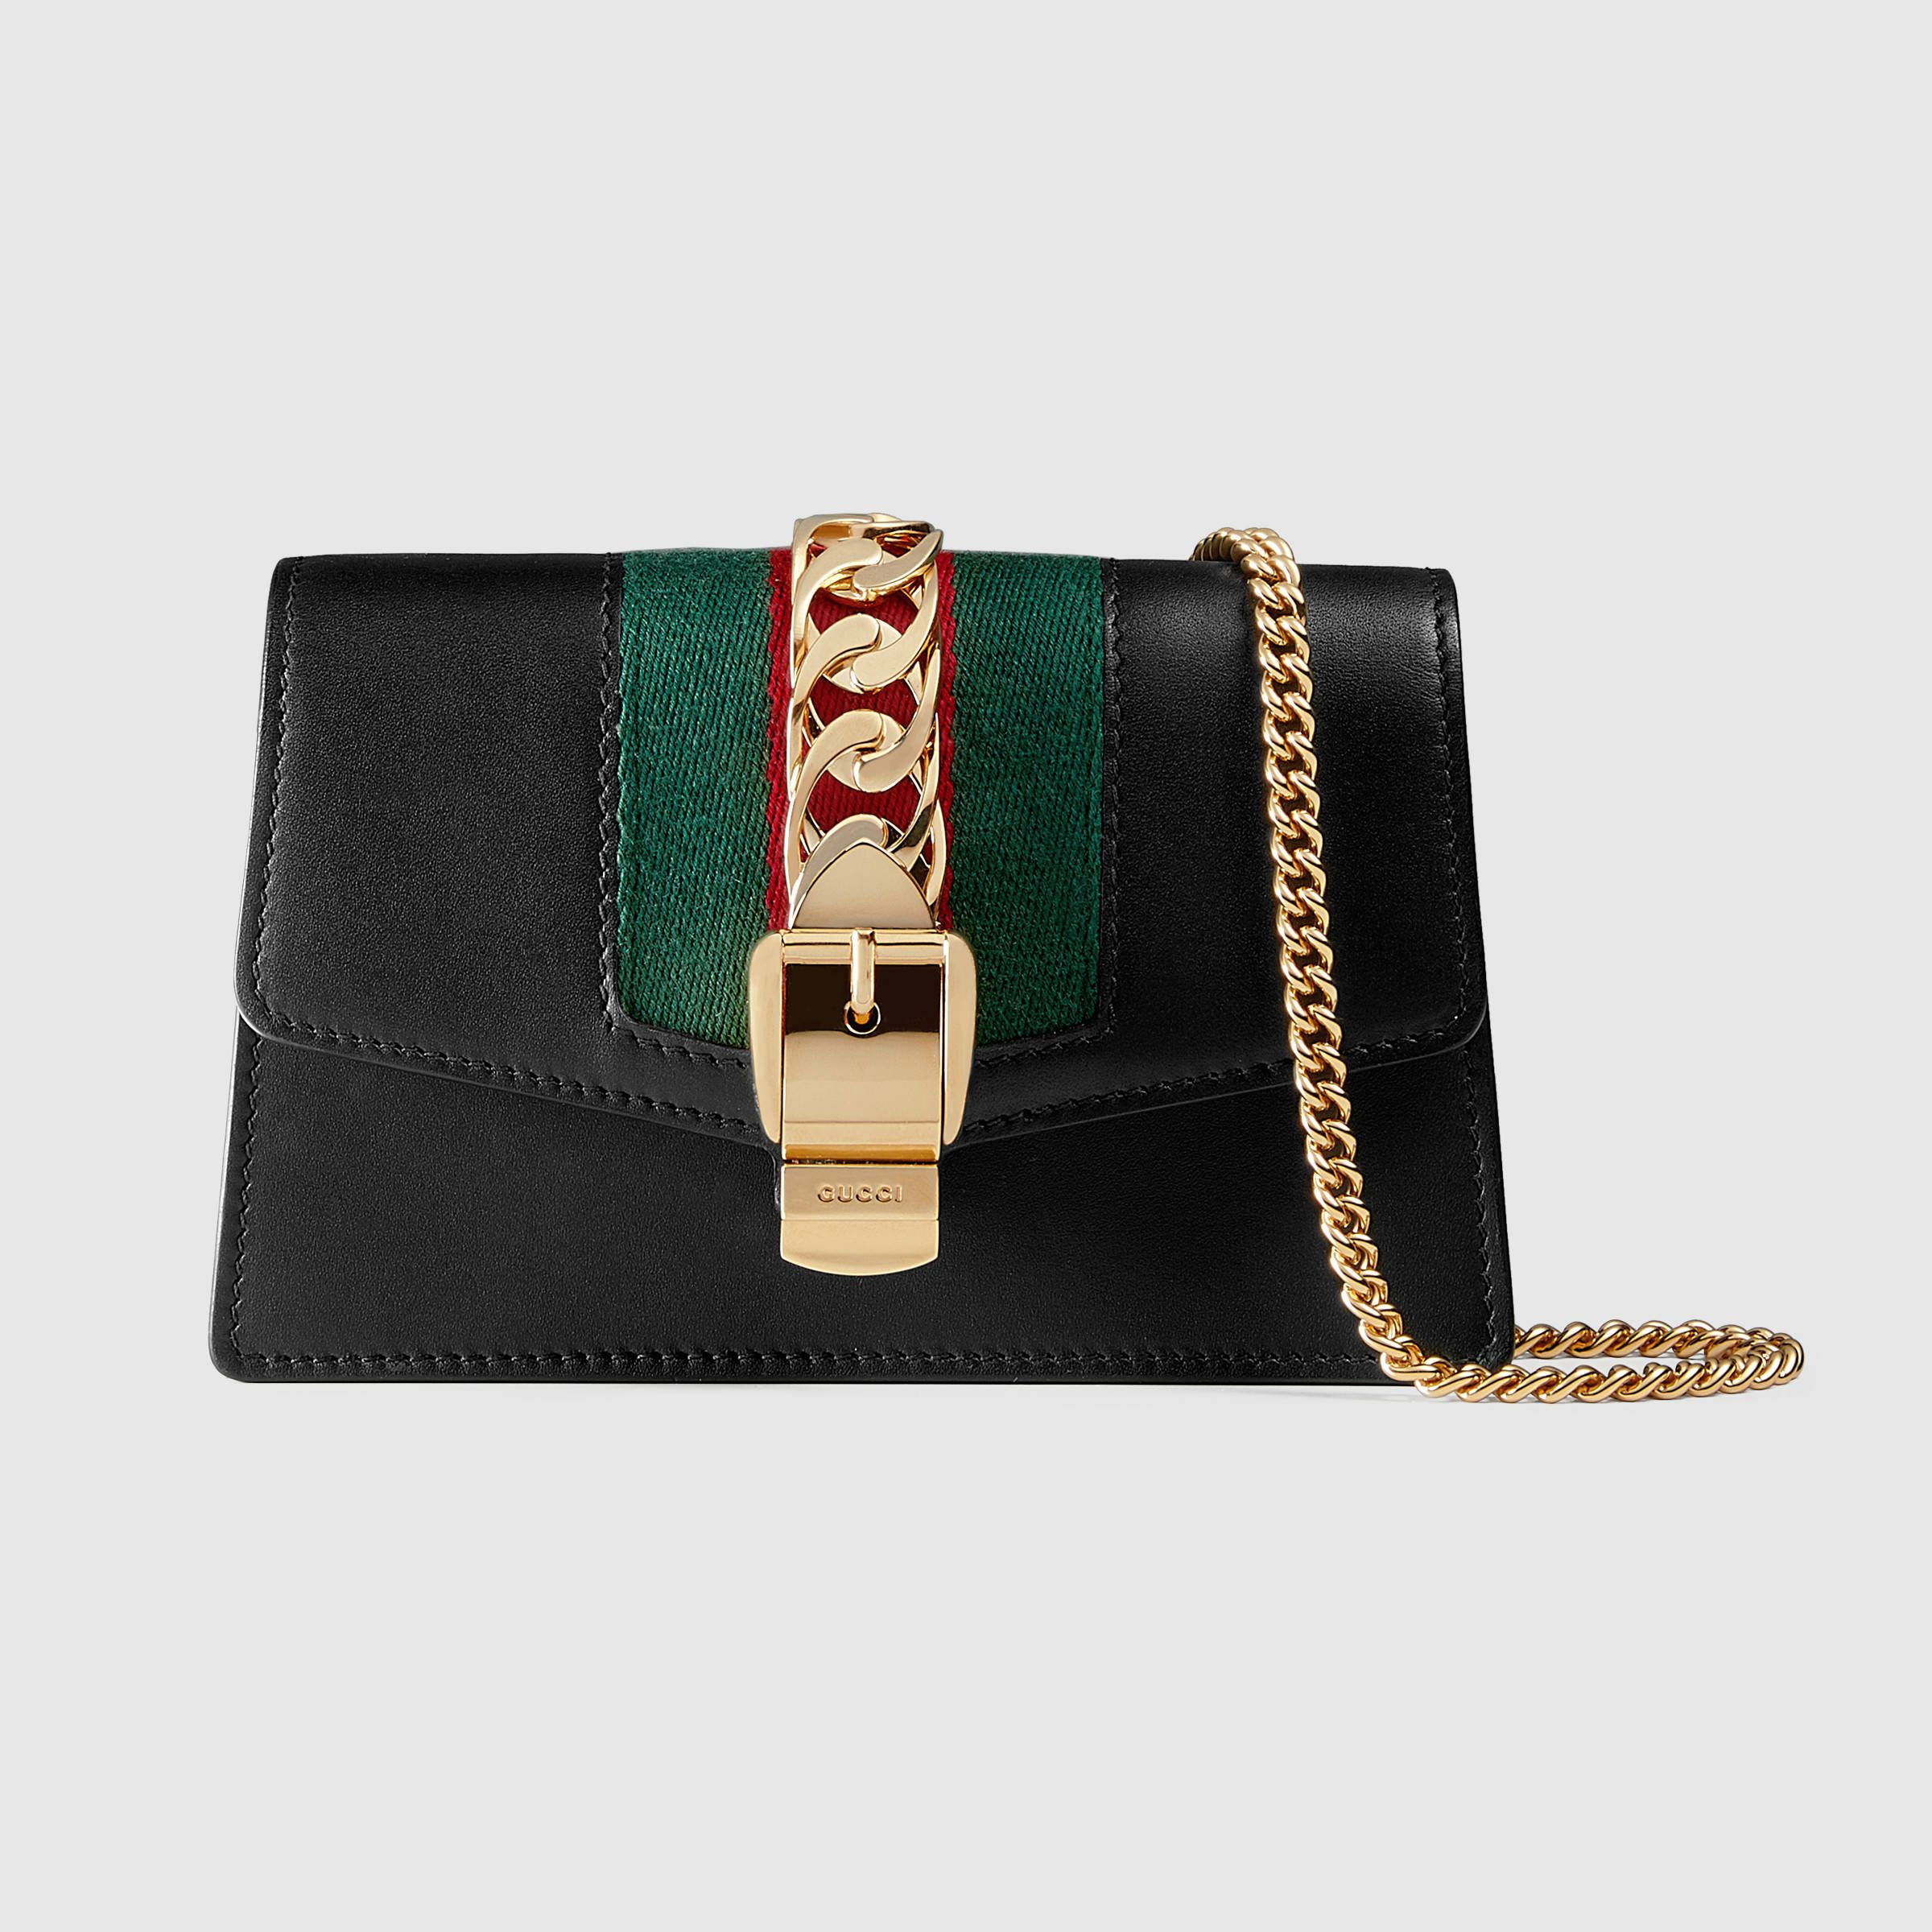 d02c11175b2 Sylvie leather mini chain bag - Gucci Women s Wallets   Small Accessories  494646CWLSG1060